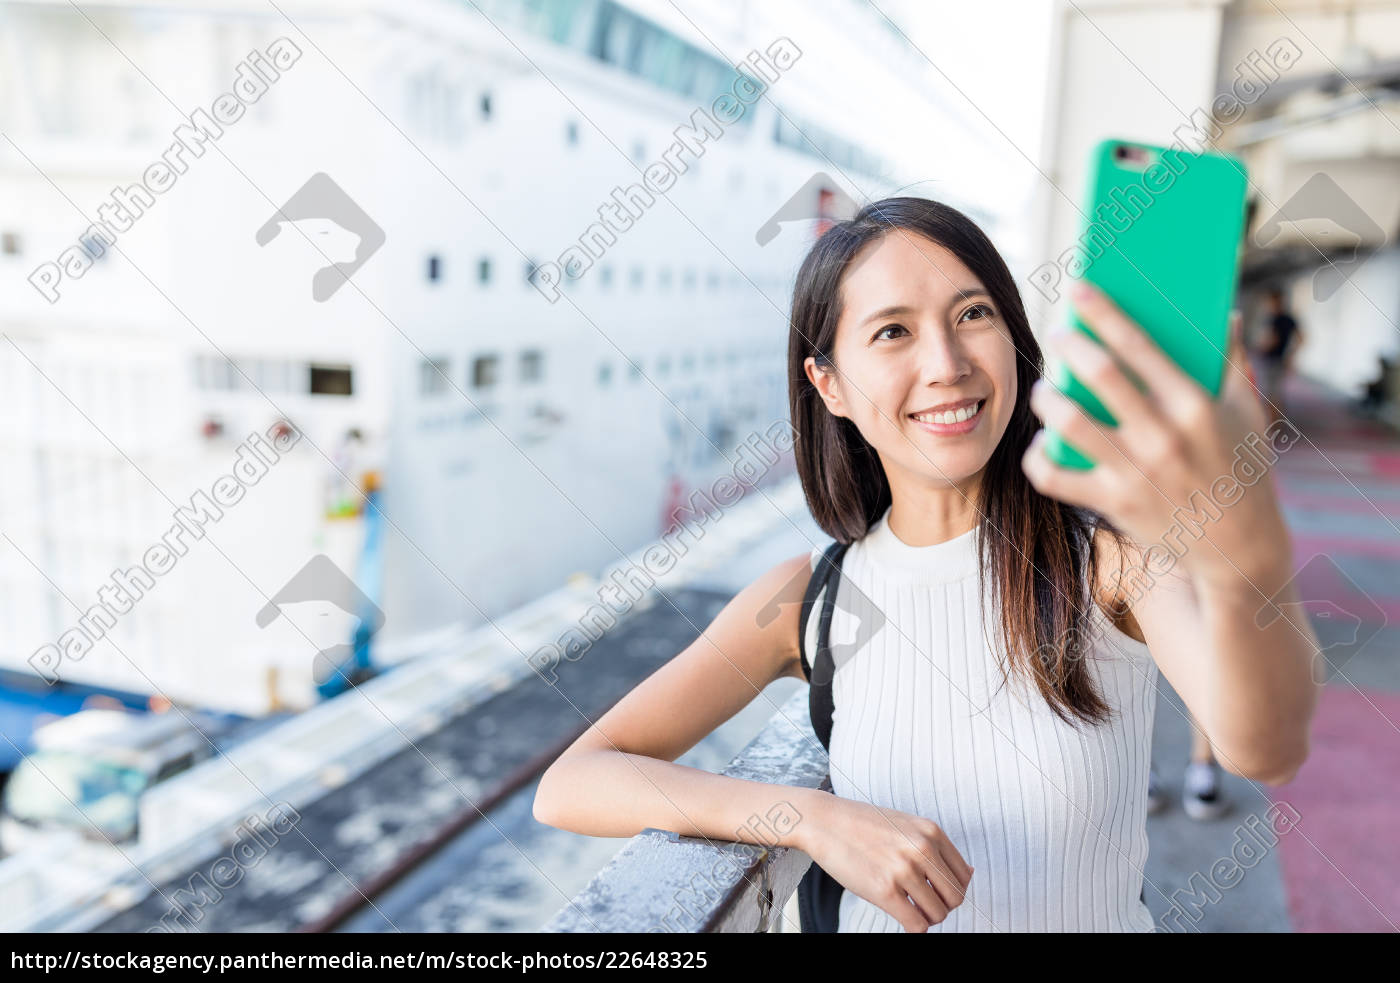 woman, taking, selife, by, mobile, phone - 22648325